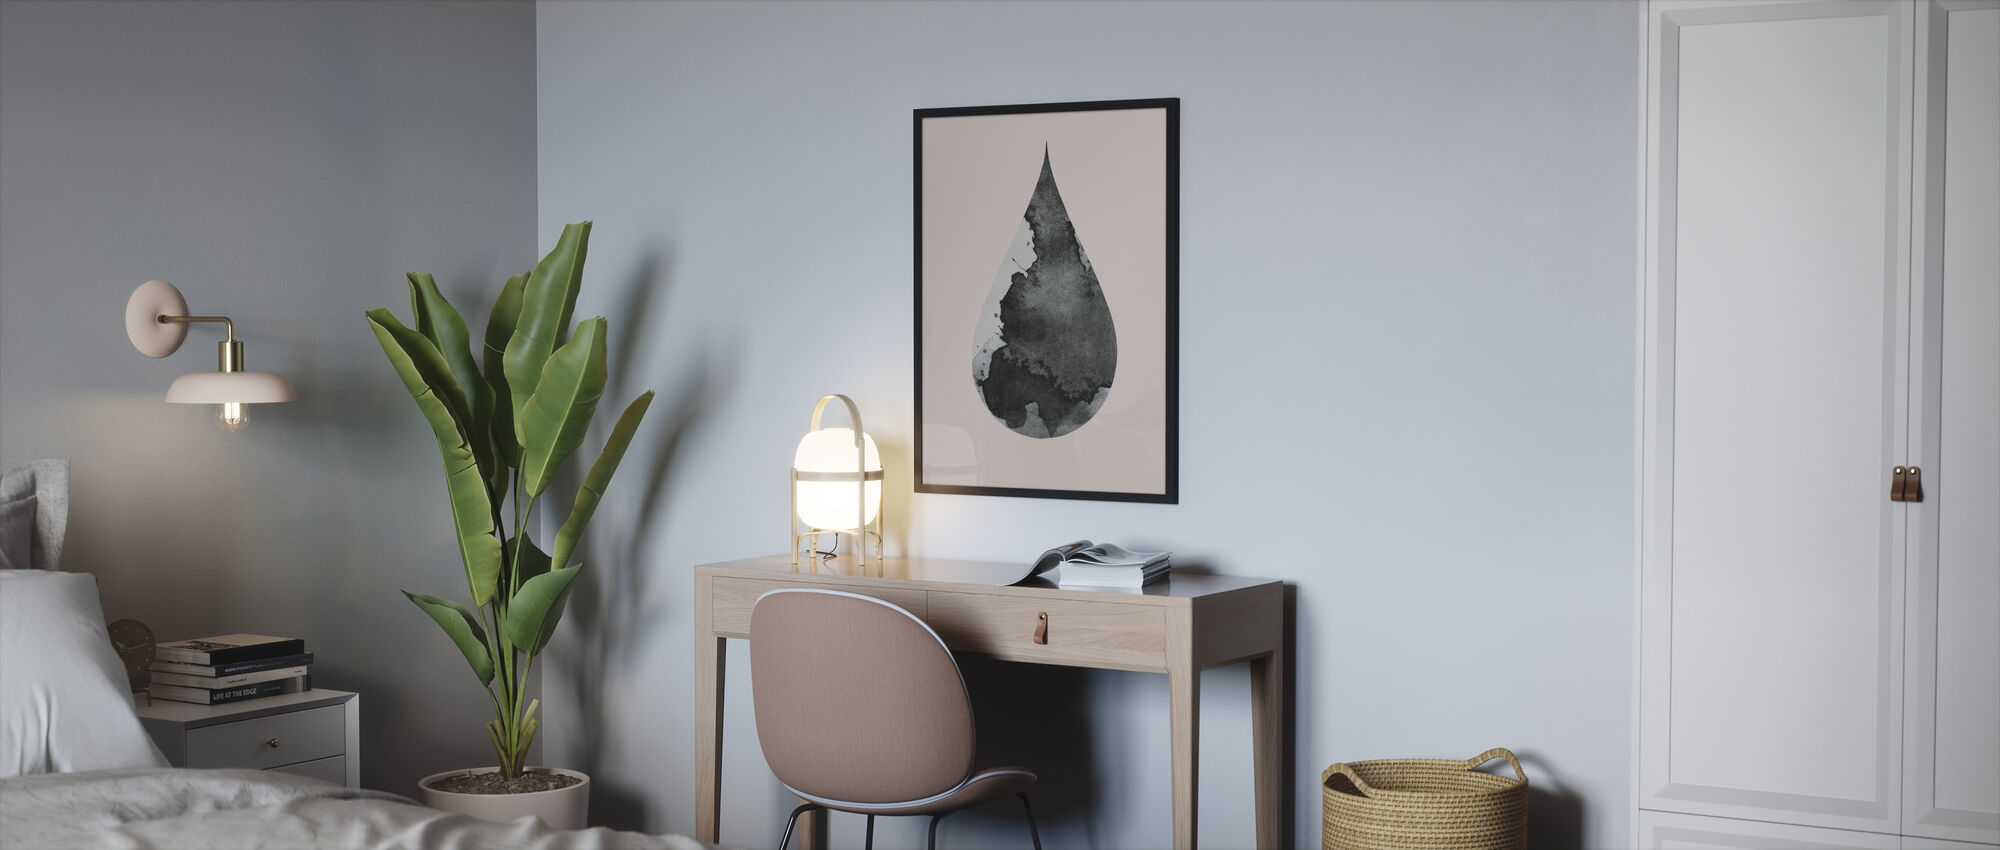 Drop No 4 - Framed print - Bedroom